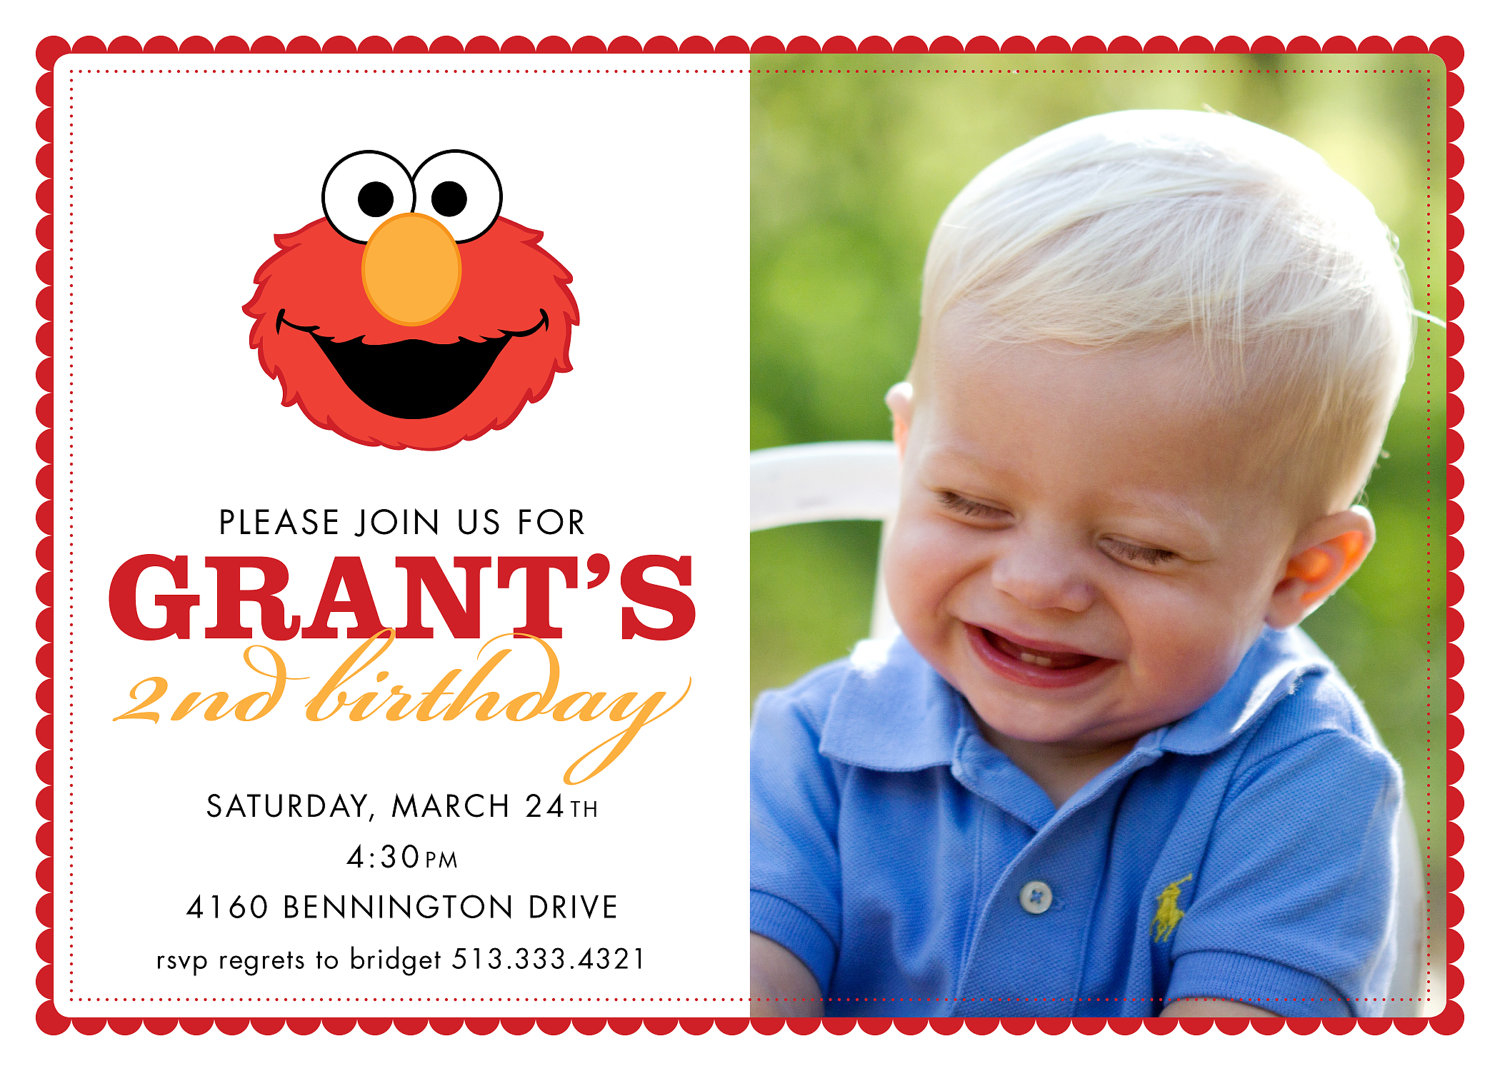 2nd Birthday Invitation Wording Minnie Mouse Custom Invitations – 2nd Birthday Invite Wording